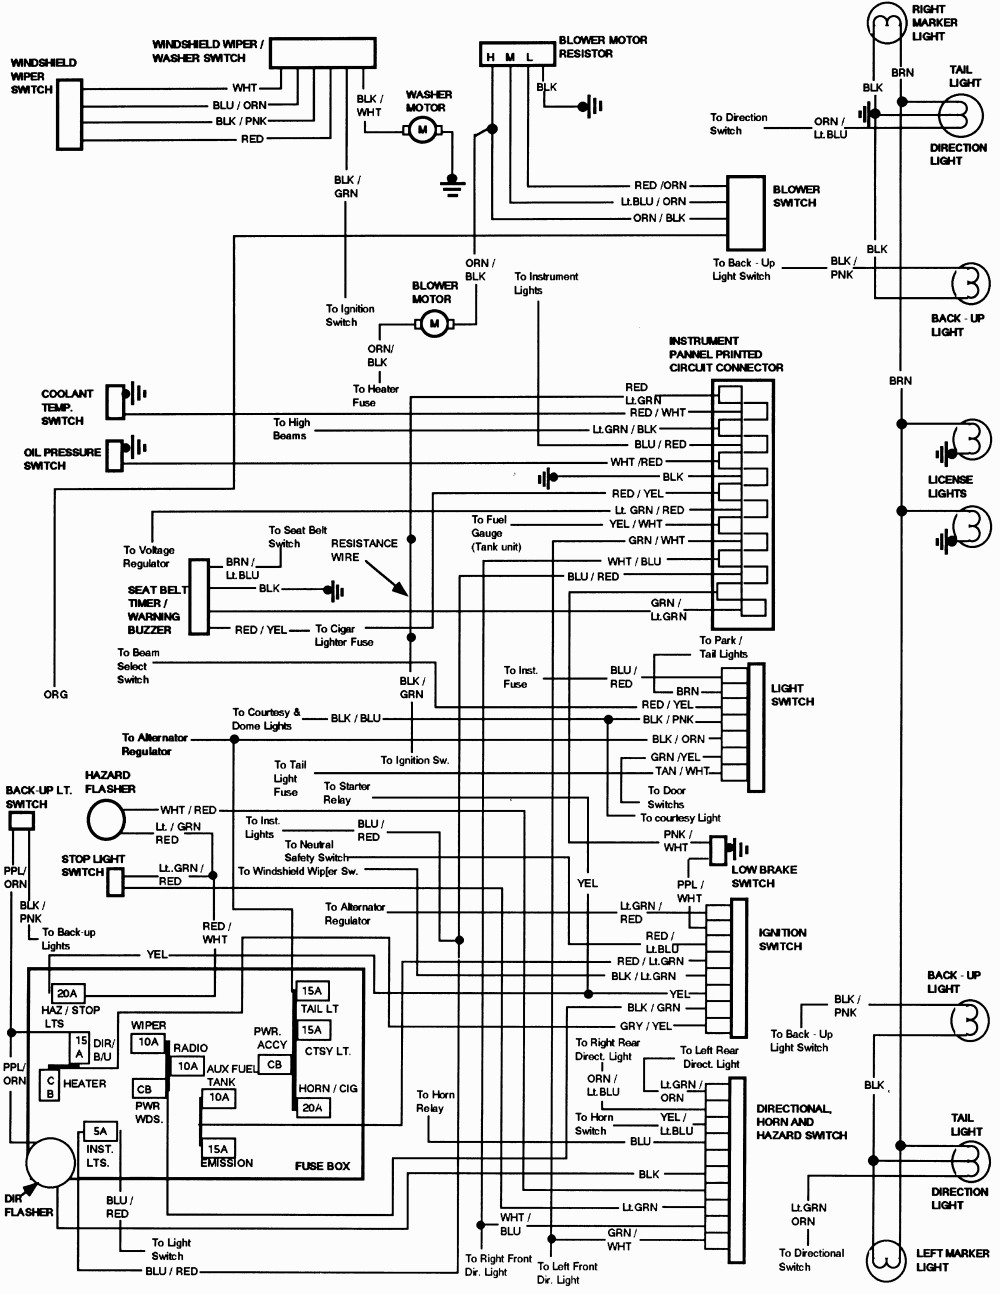 1994 F150 Wiring Diagram Wiring Diagram Rich Corsa A Rich Corsa A Pasticceriagele It